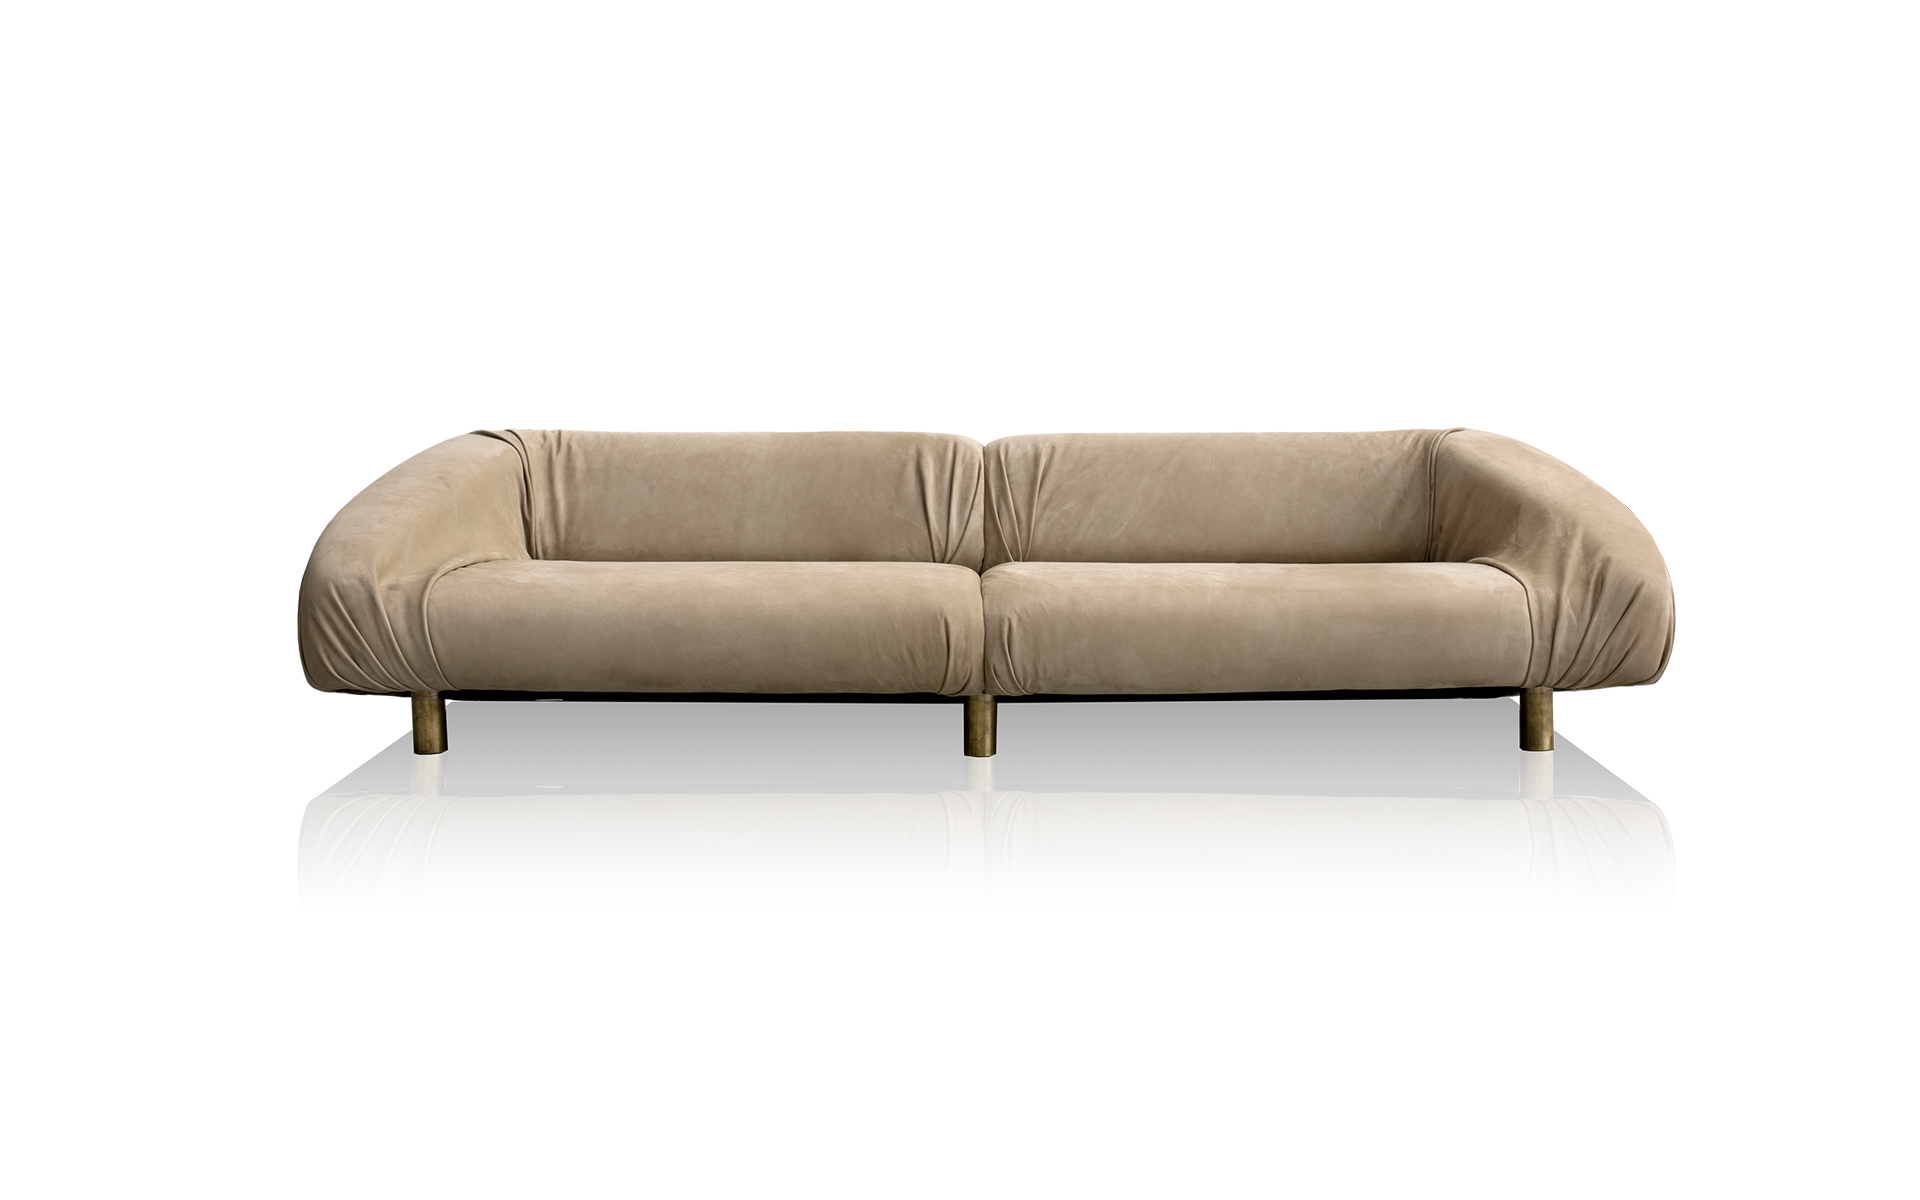 Lovely Vincenzo De Cotiis   Fold Sofa For Baxter Design Ideas